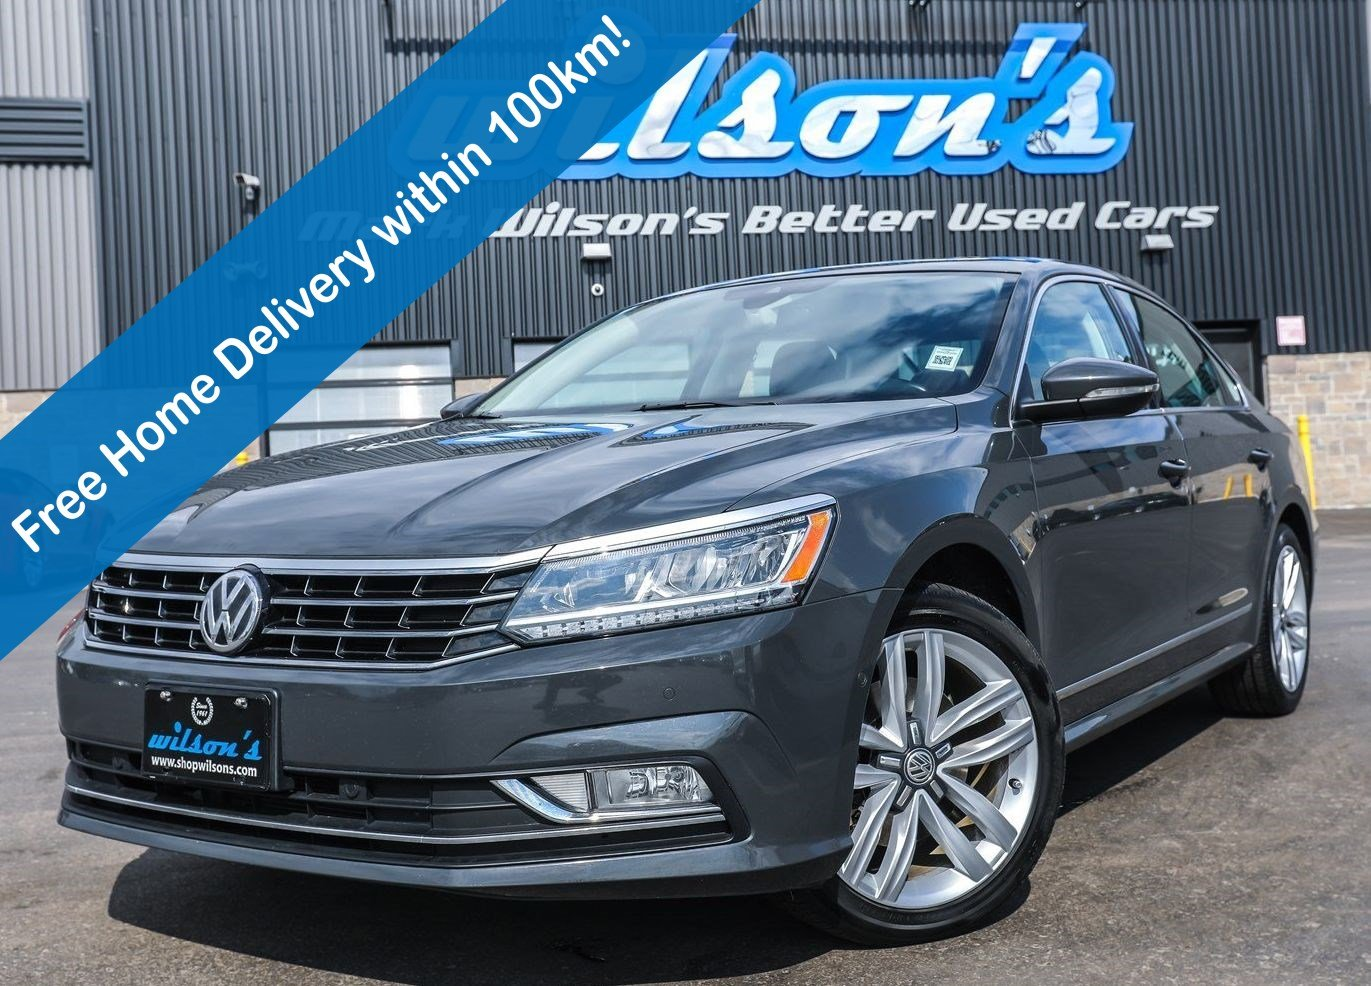 Certified Pre-Owned 2017 Volkswagen Passat Highline, Leather, Navigation, Sunroof, Rear Camera, Bluetooth, Heated + Memory Seats and more!